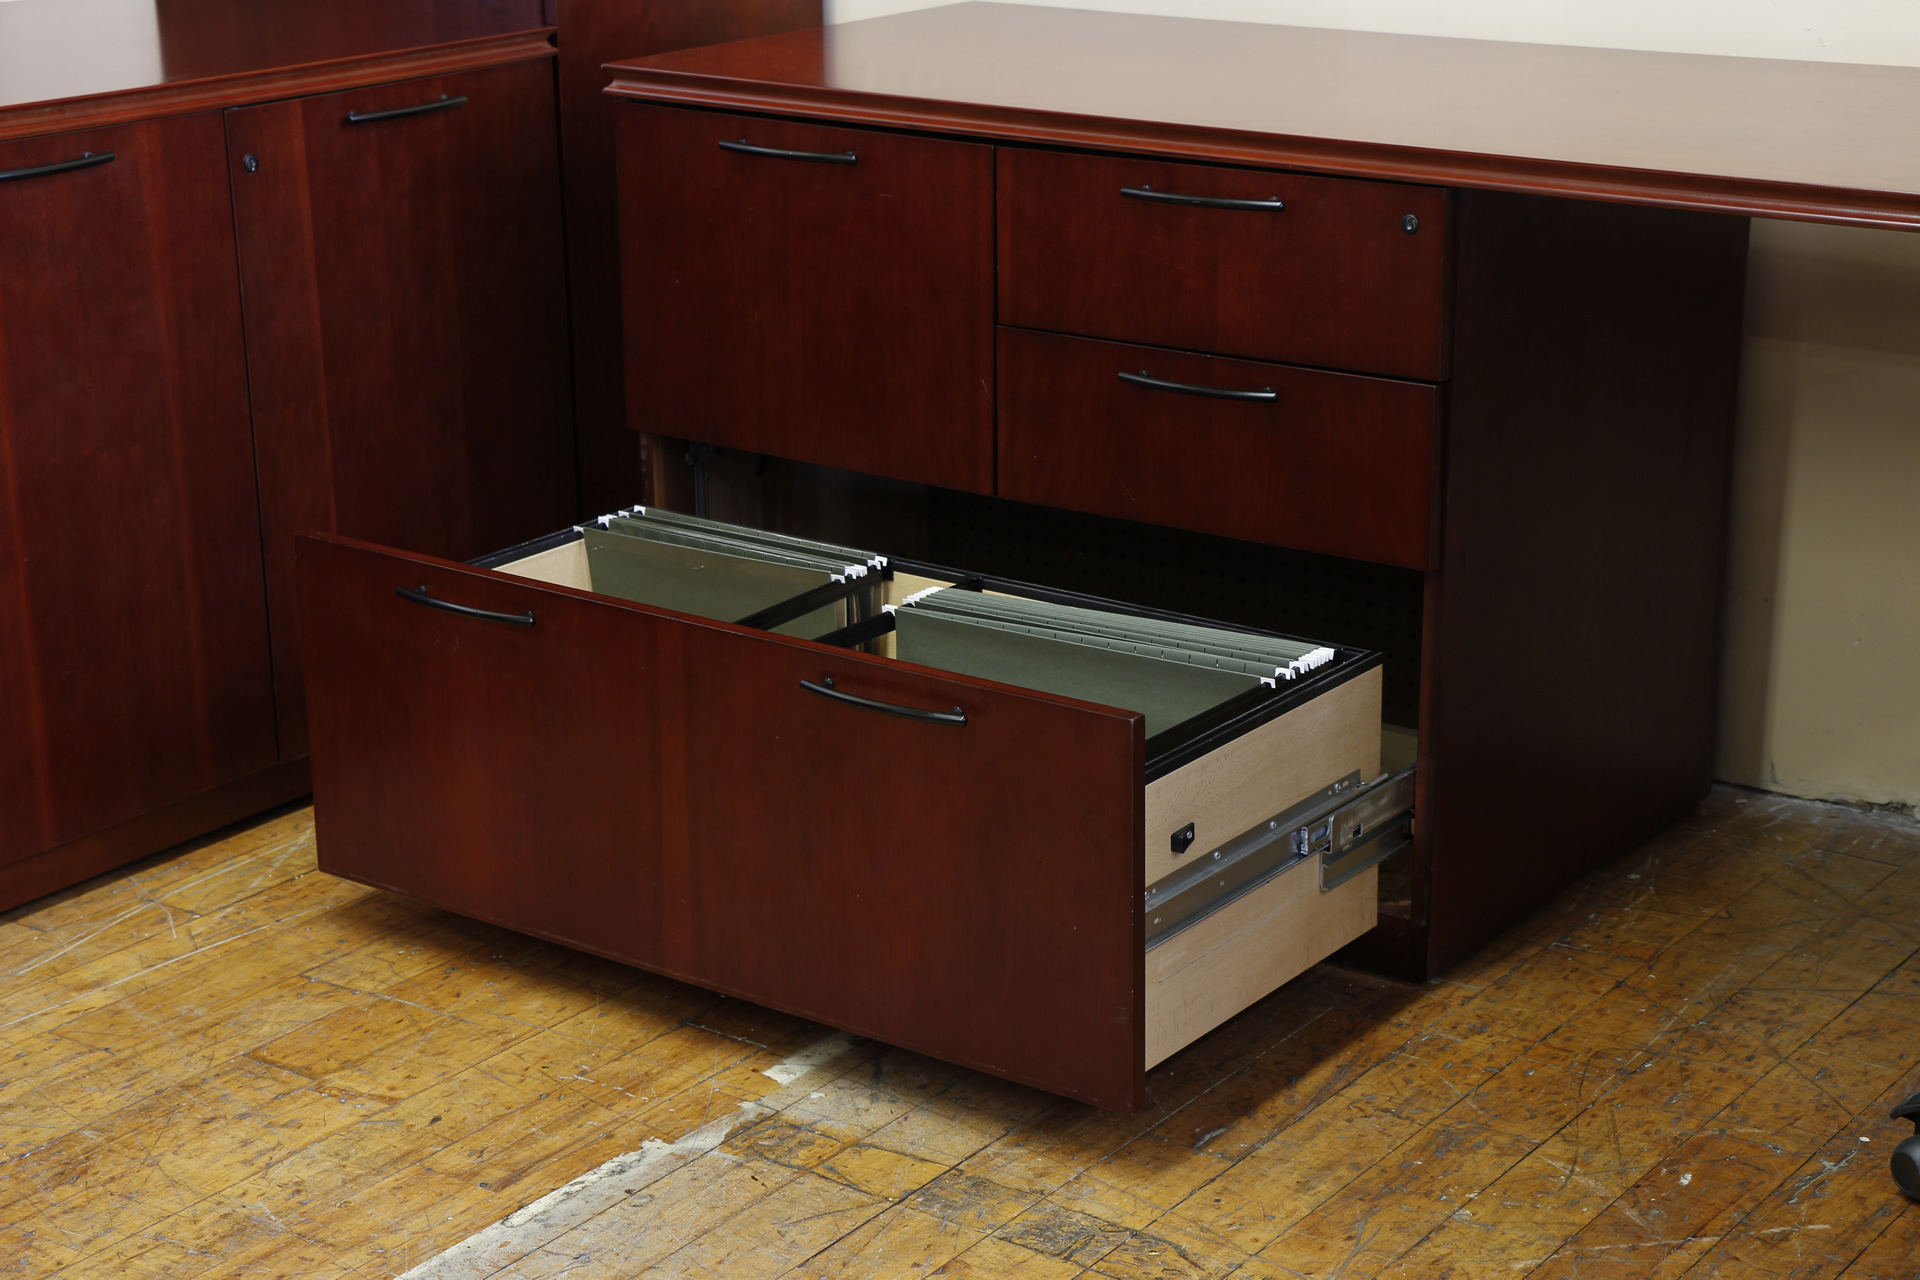 peartreeofficefurniture_peartreeofficefurniture_mg_4215.jpg